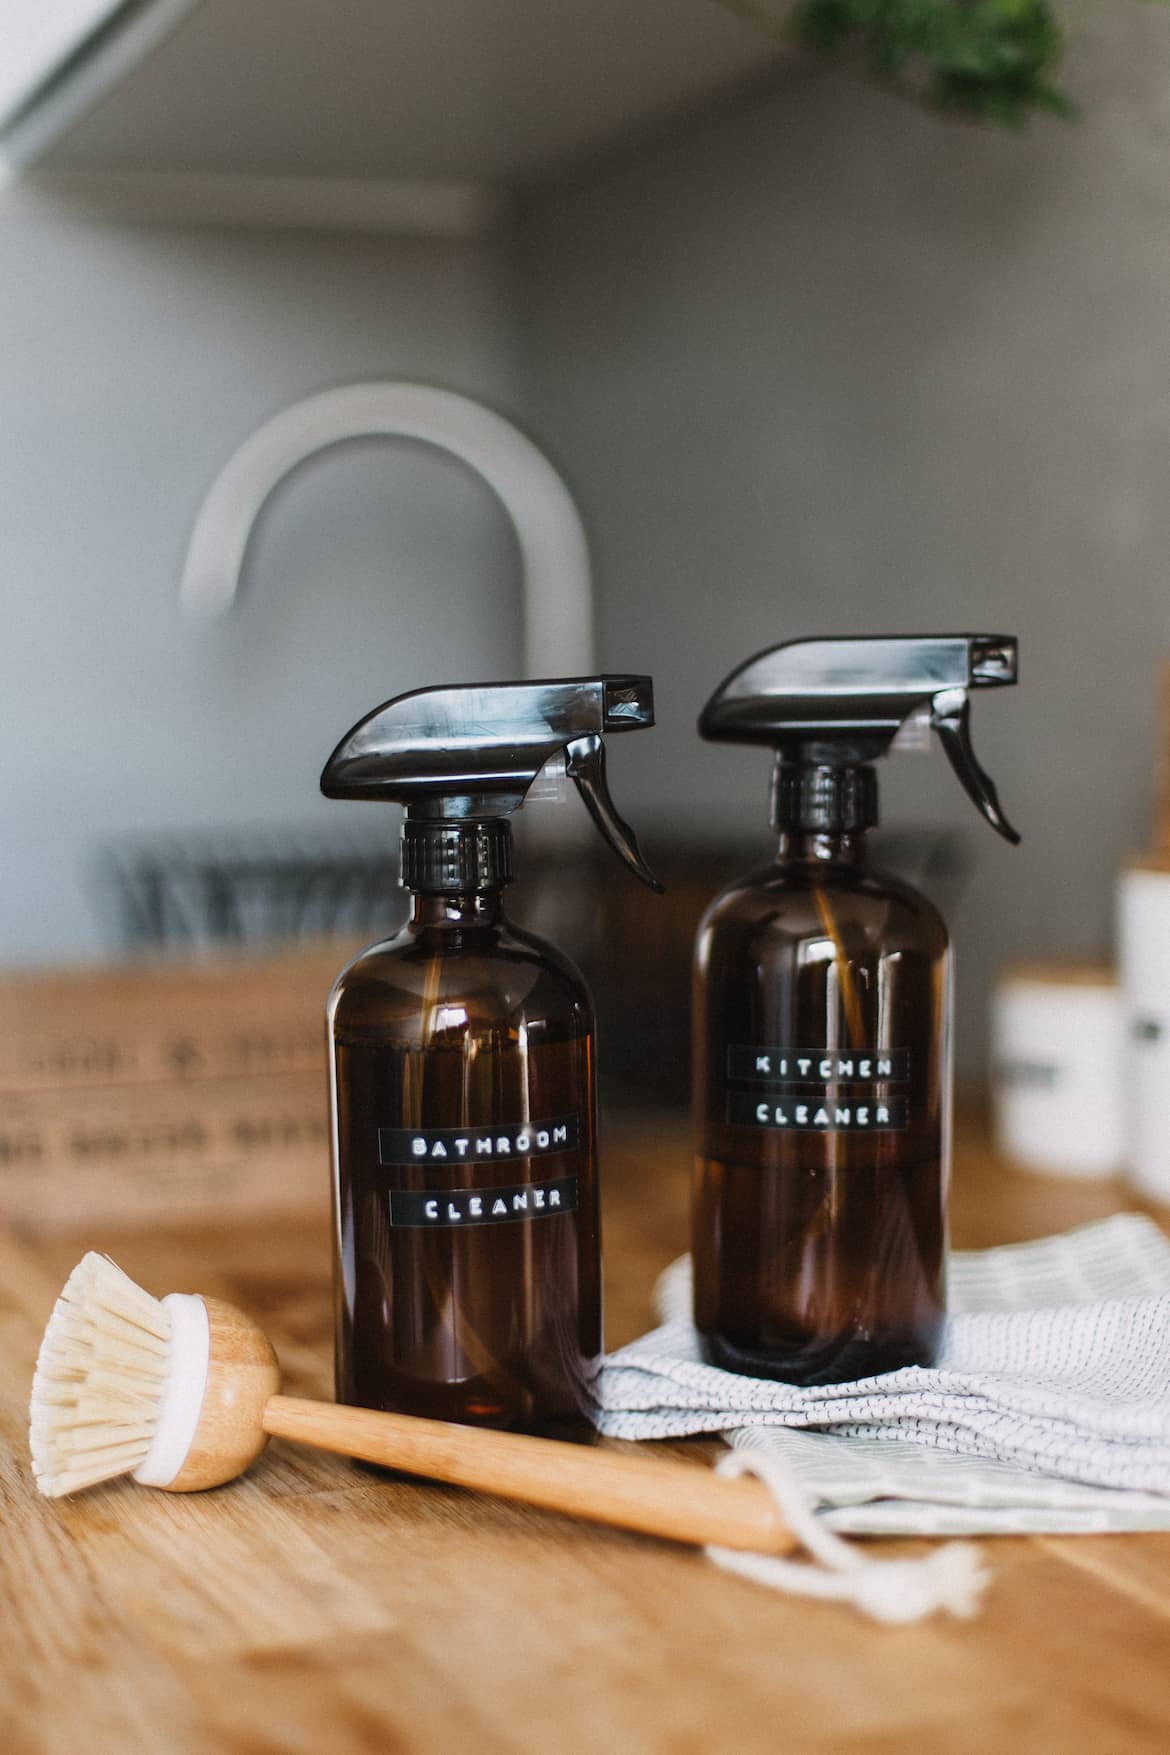 Bathroom-and-kitchen-cleaning-bottles